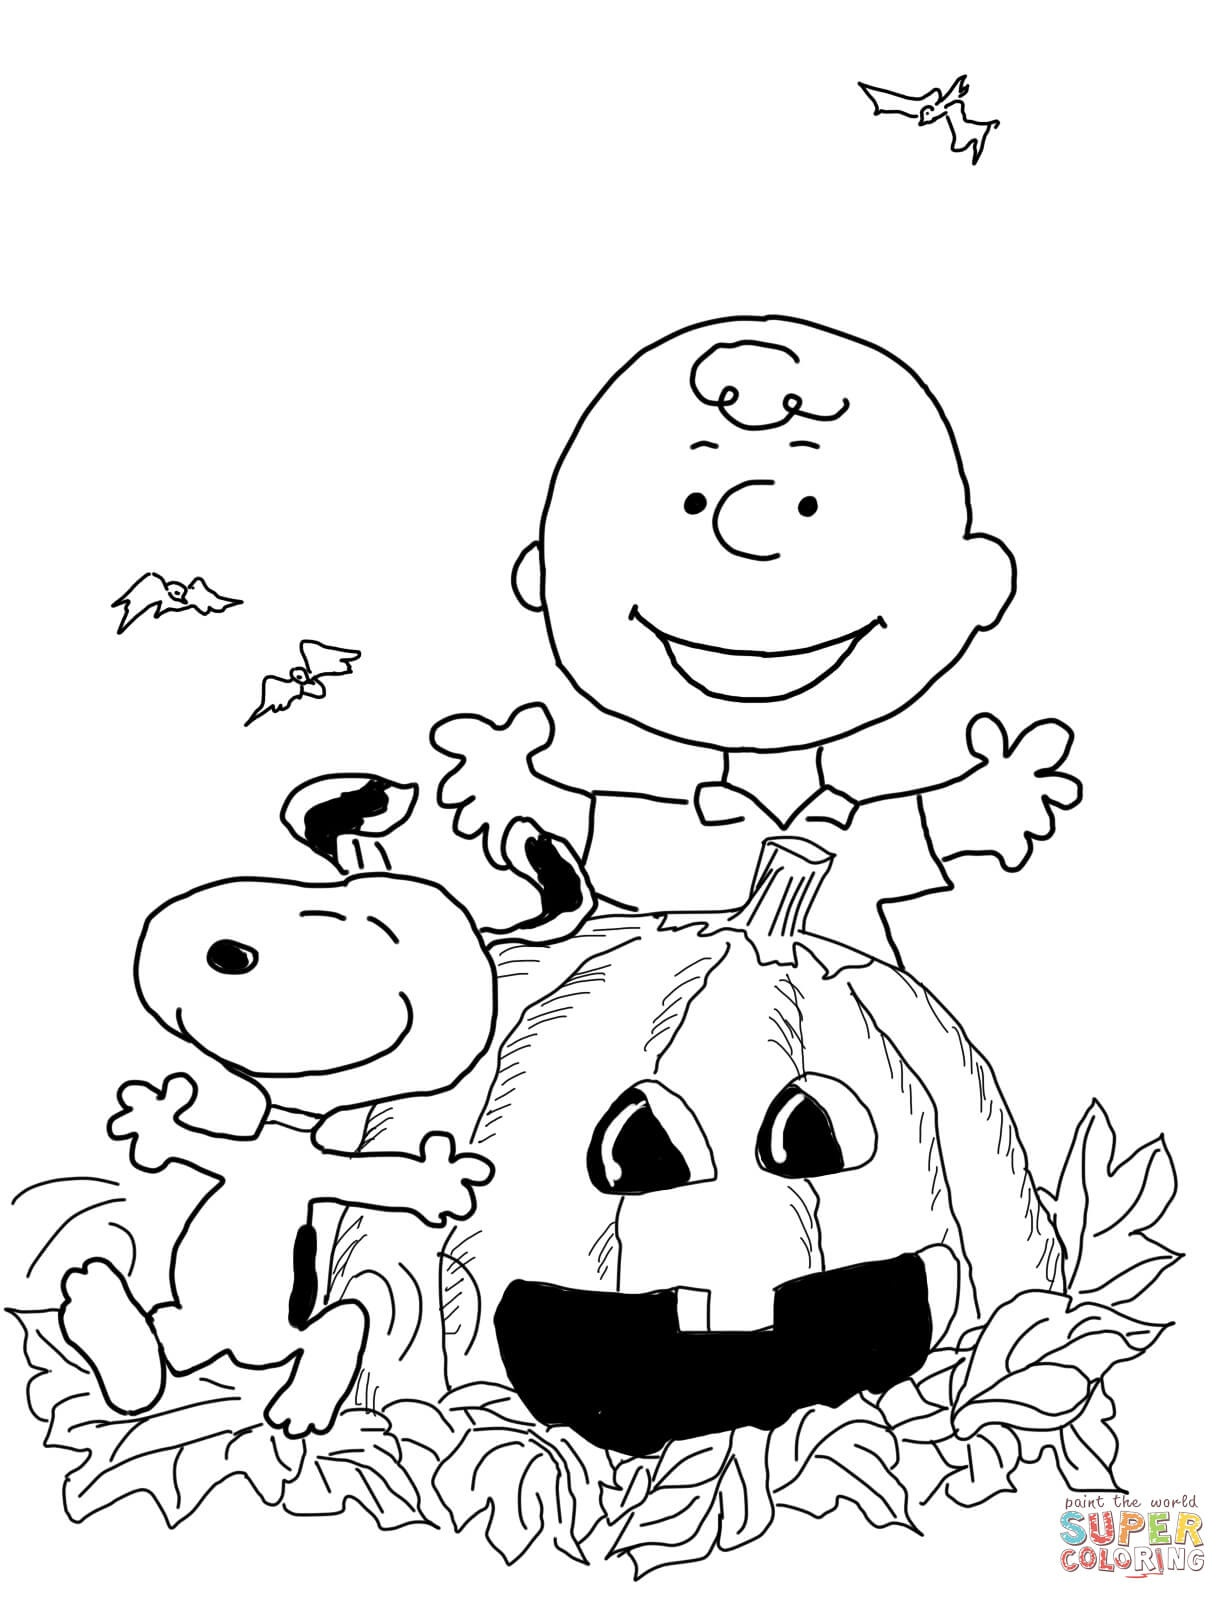 free halloween printable coloring pages free printable halloween coloring pages updated 2021 free coloring pages halloween printable